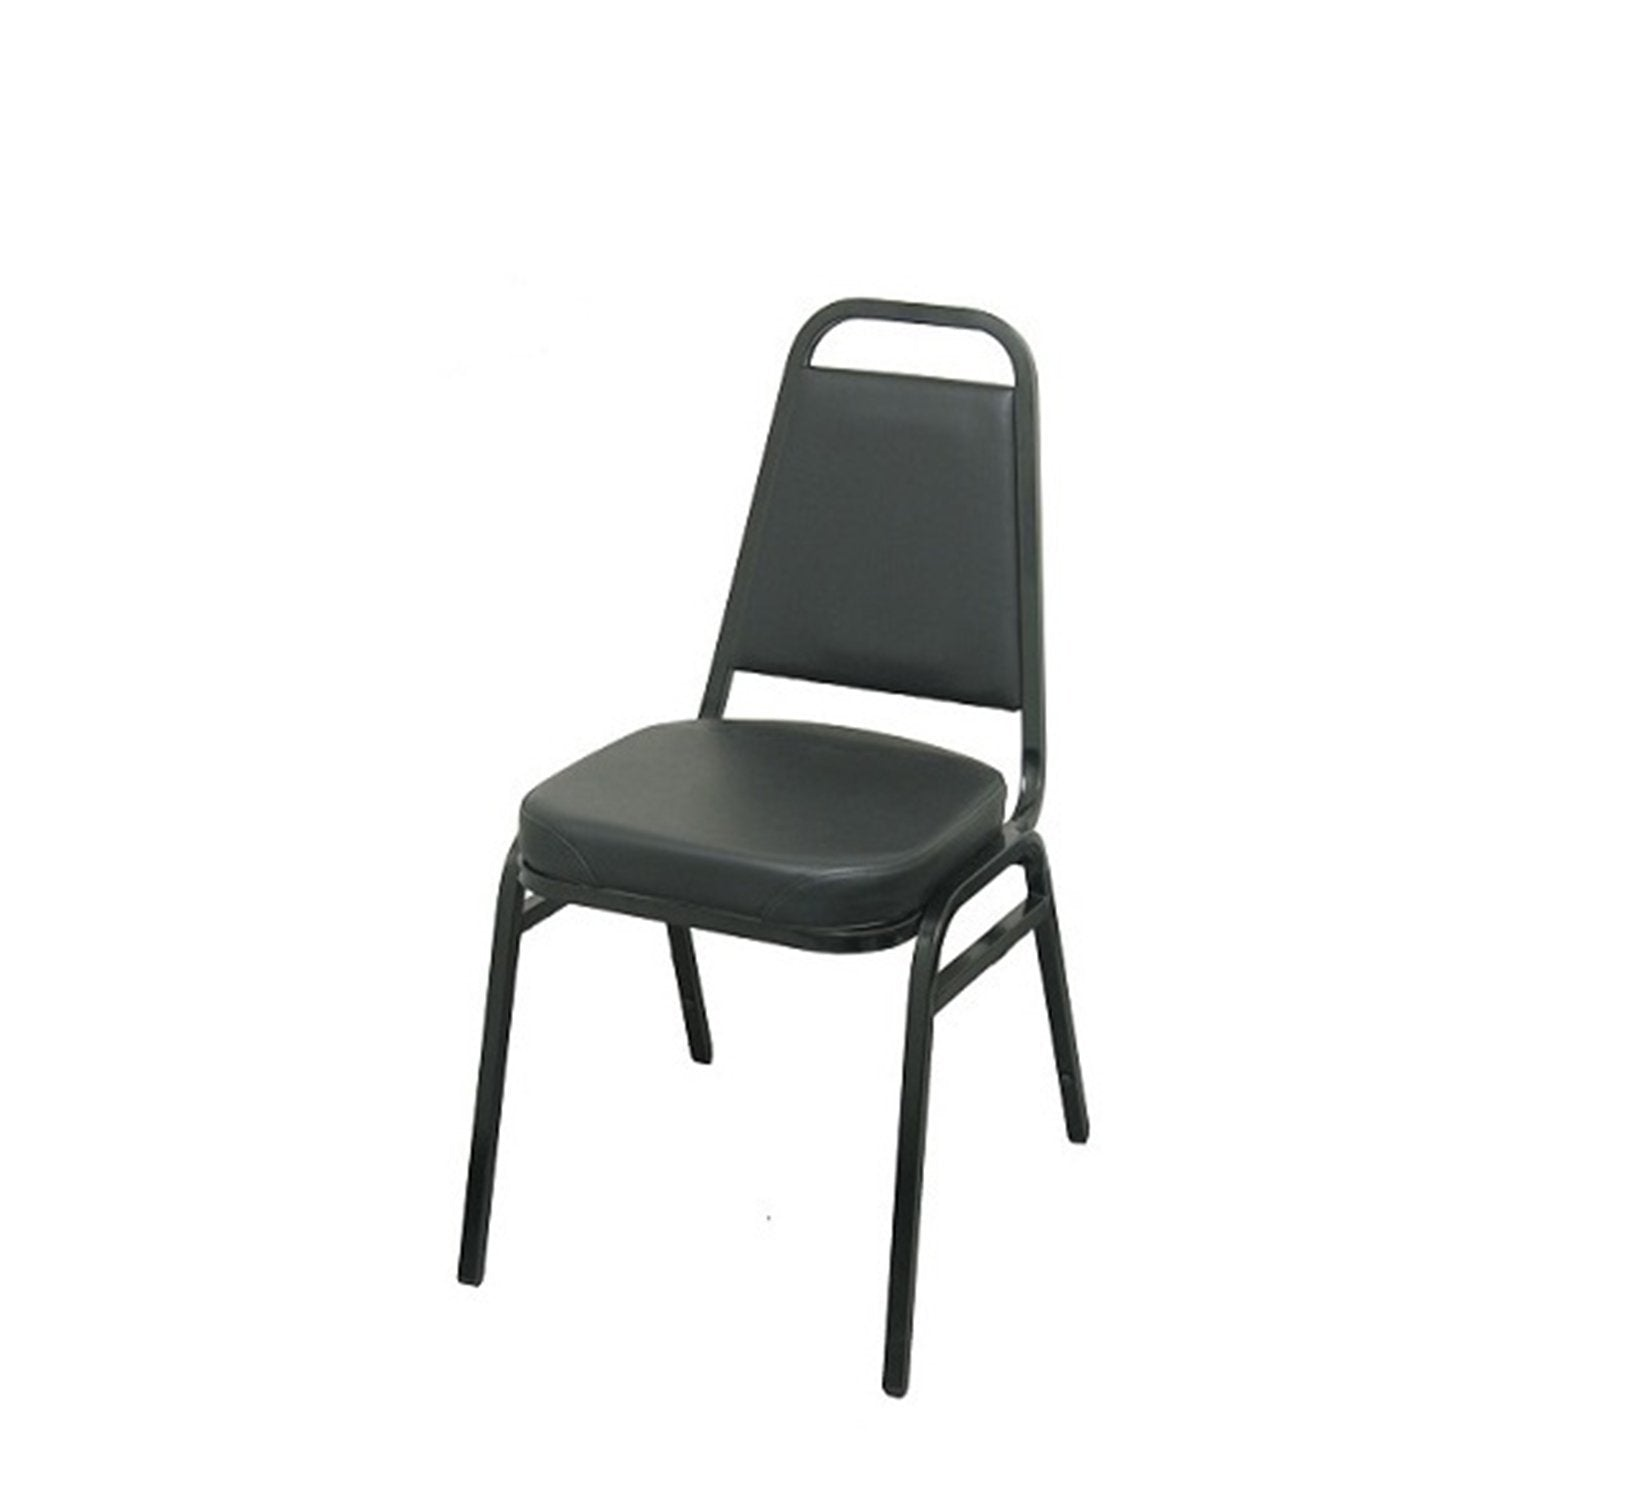 DHC 1110-BLK Black Finish, Steel Dining Chair, Black Vinyl Back & Seat